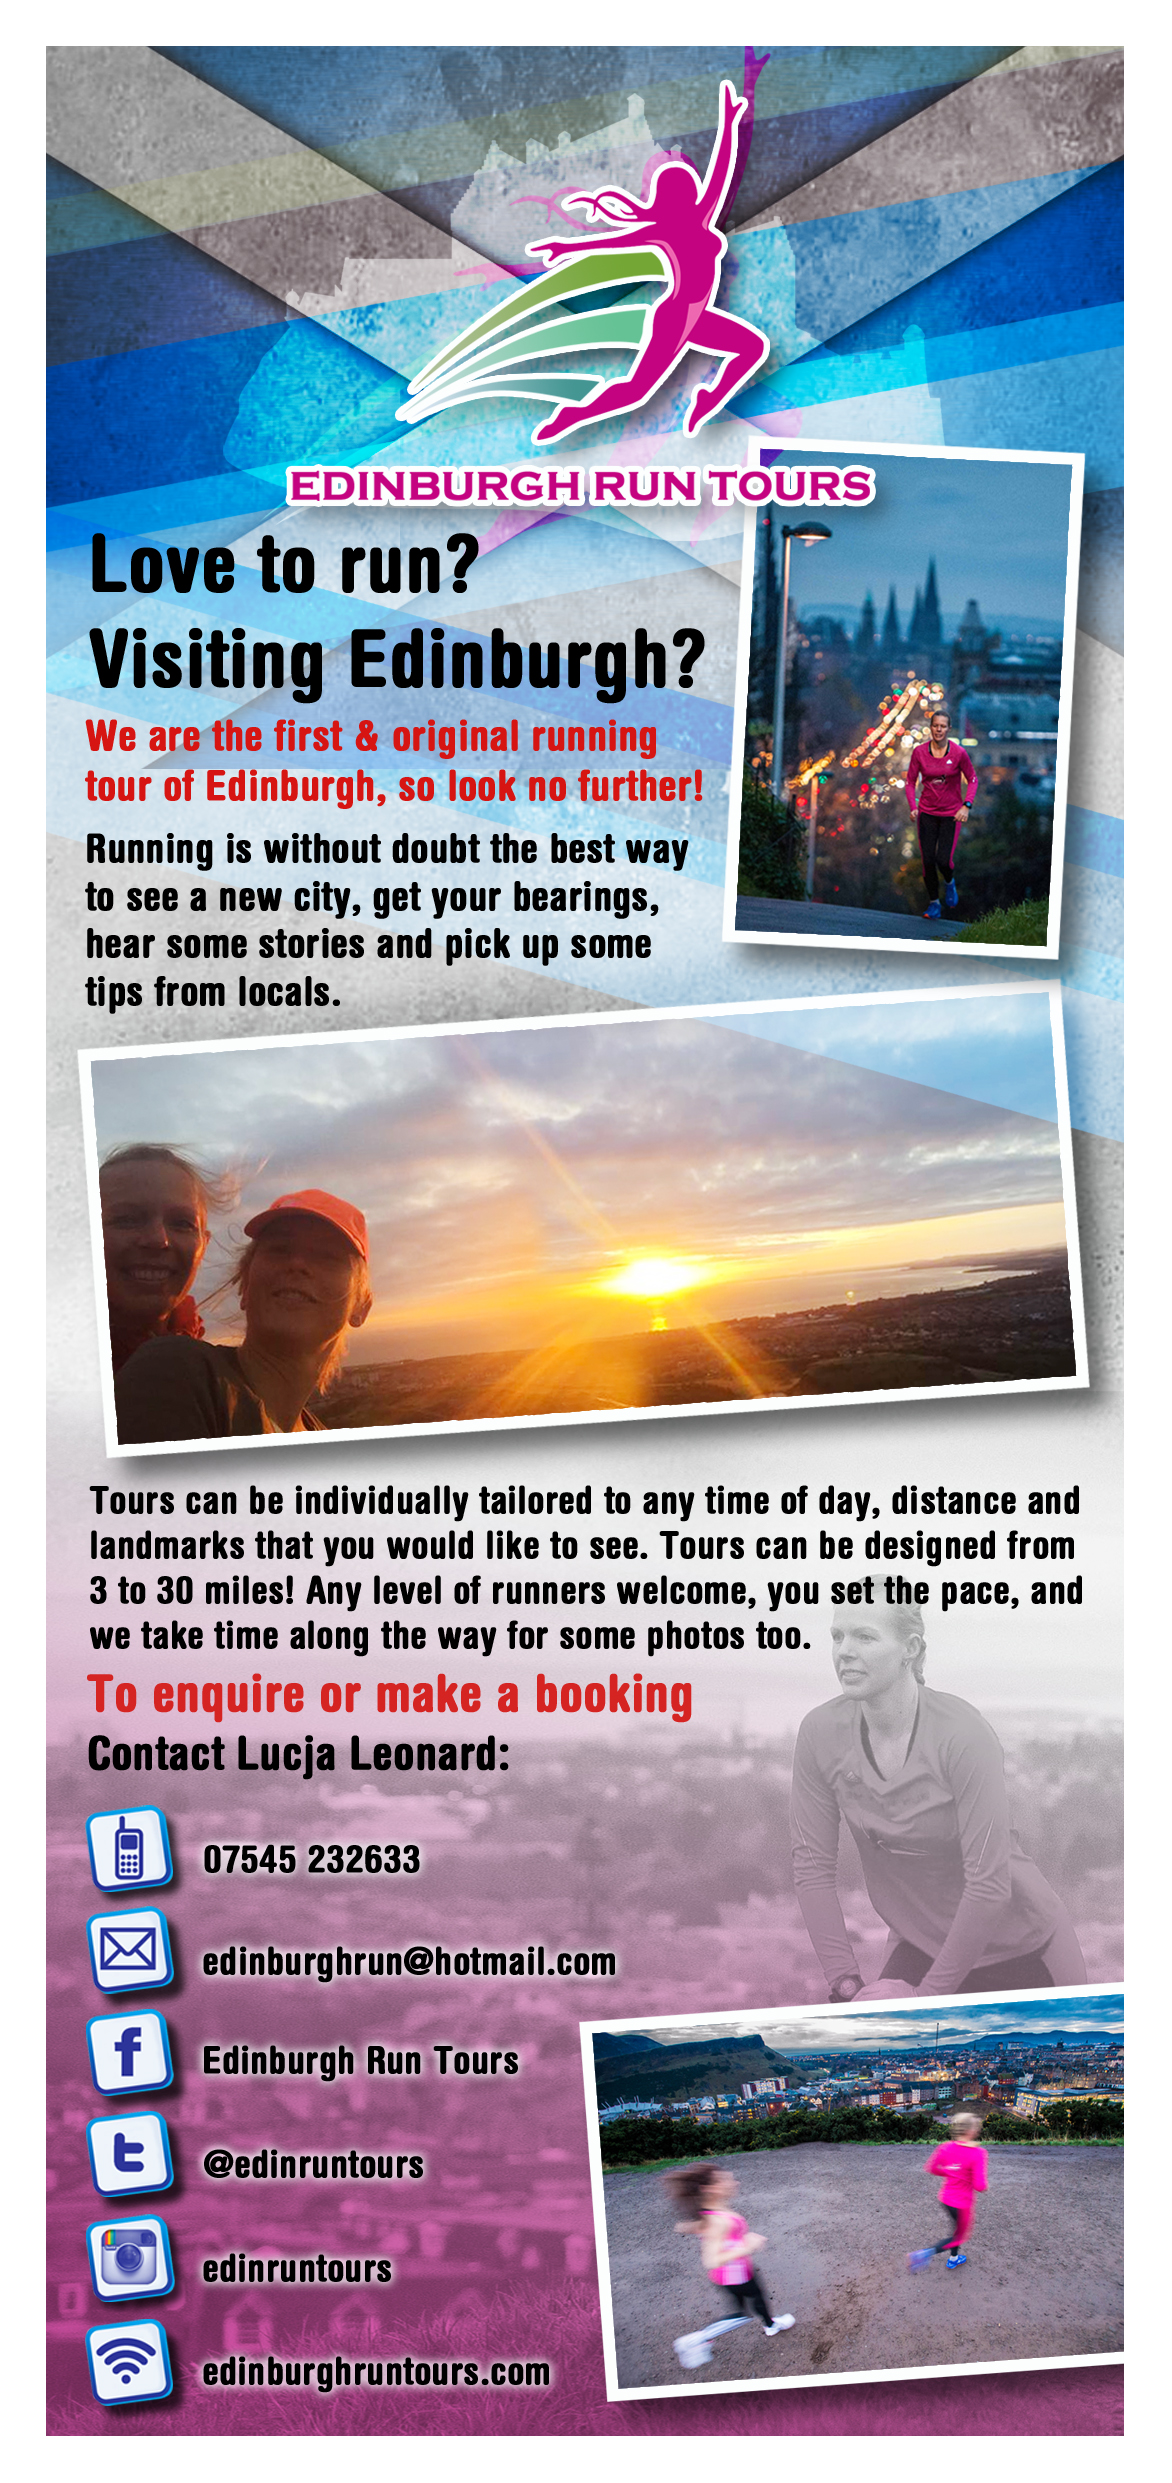 Edinburgh Run Tours